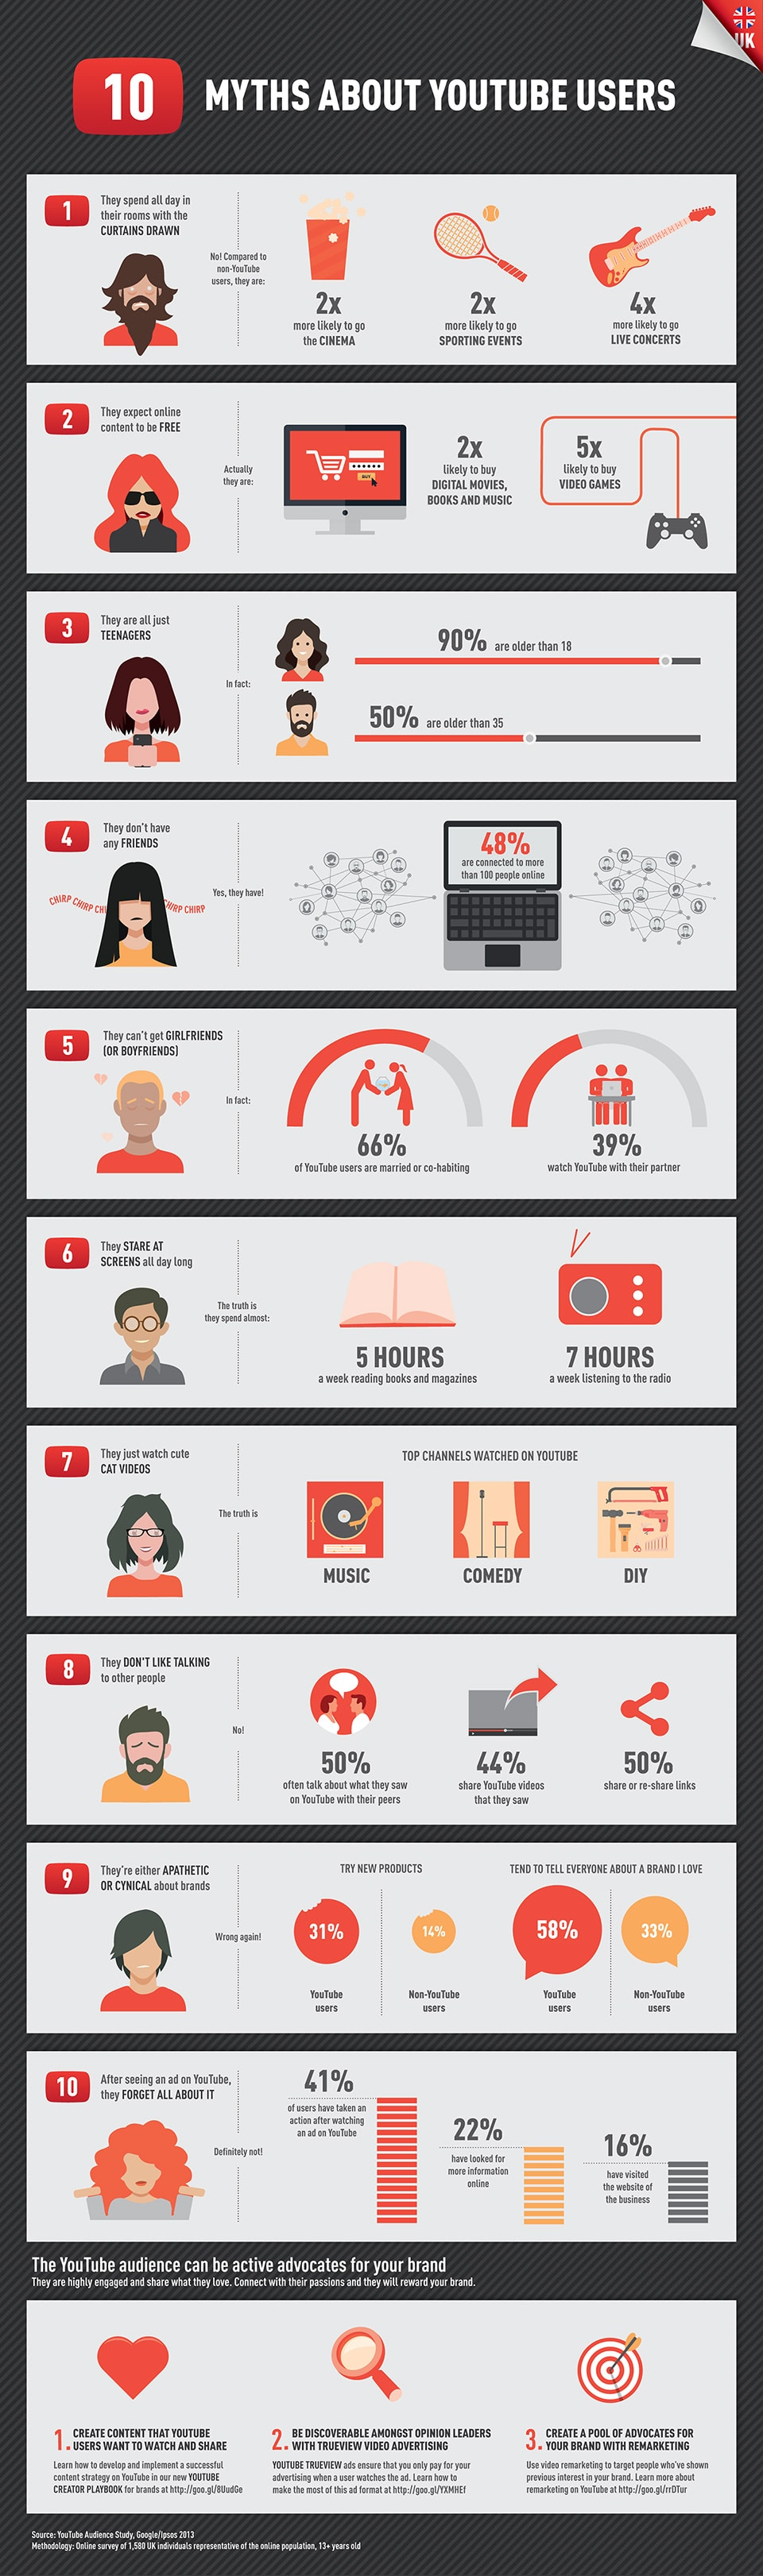 10 Myths About YouTube Users That Are False [Infographic]